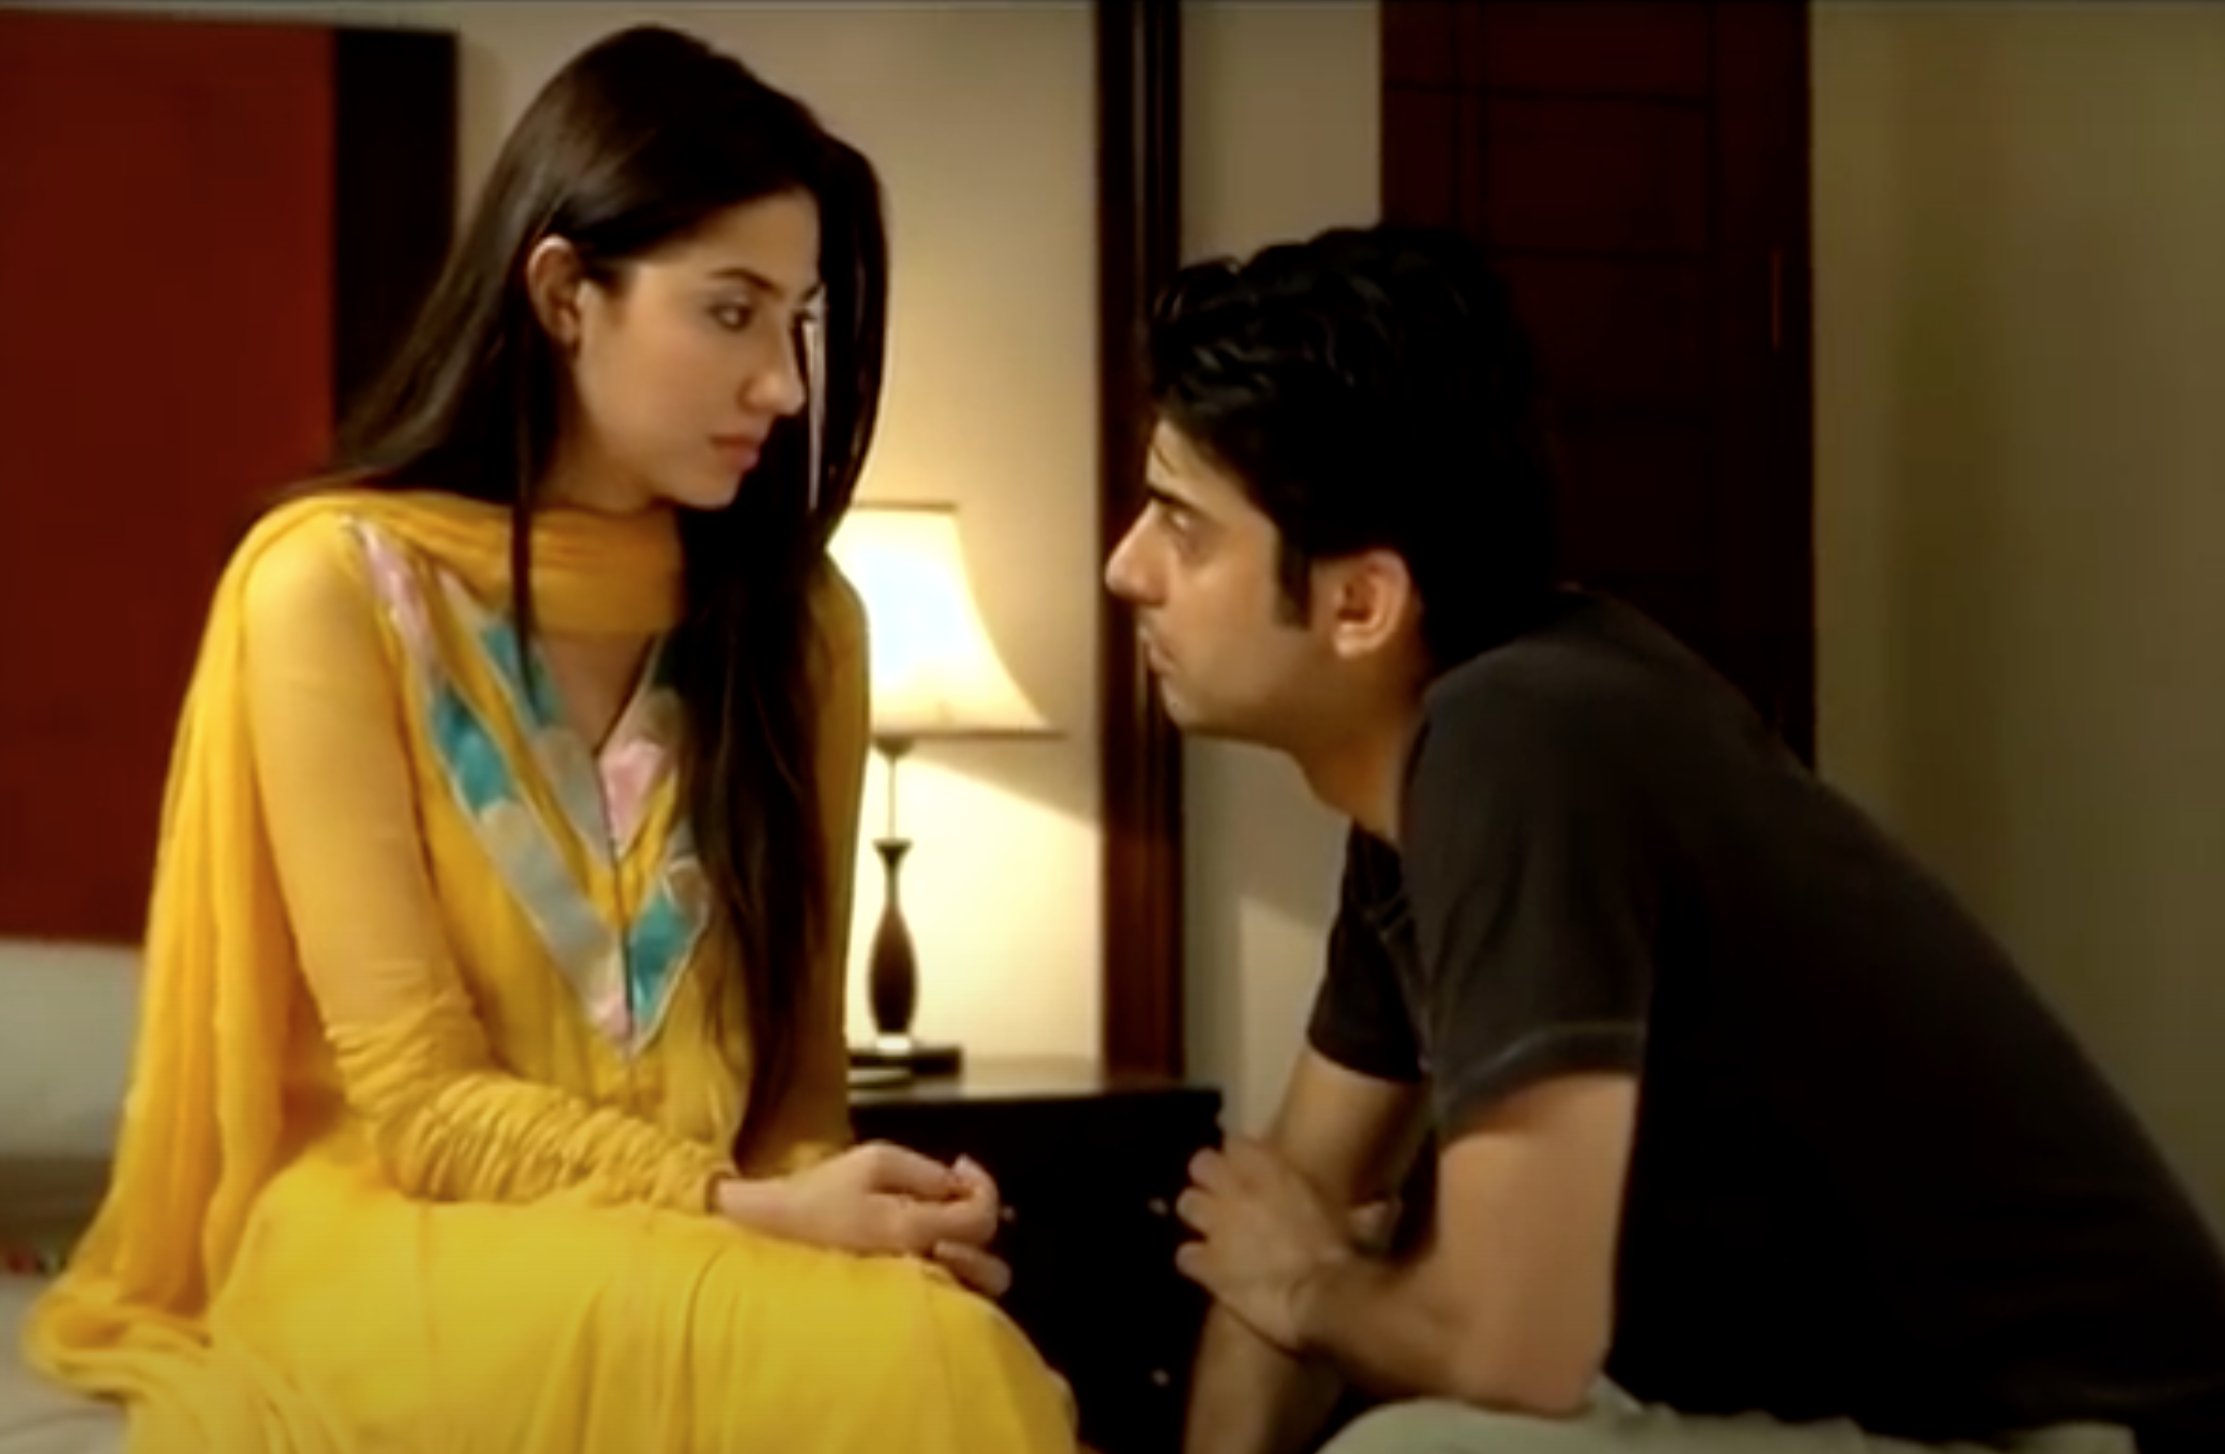 Mahira Khan and Fawad Khan in Humsafar